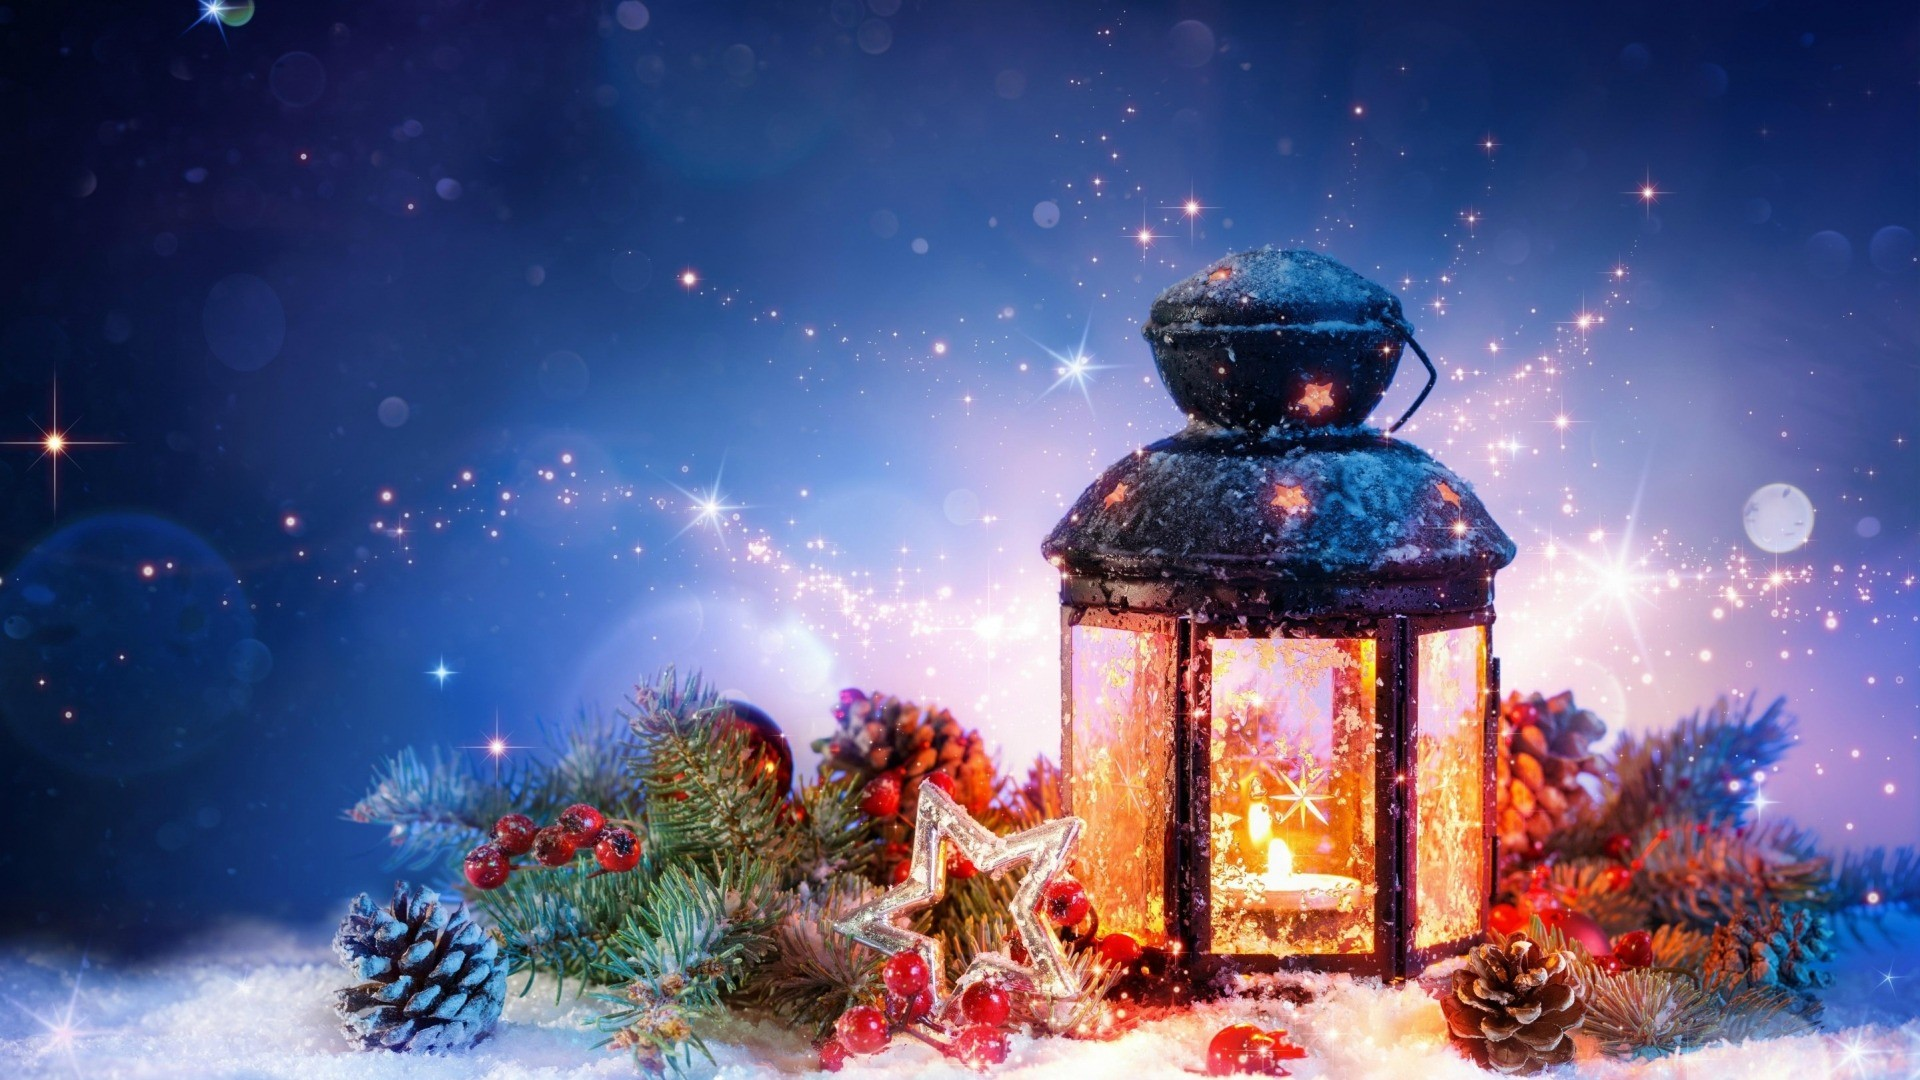 1920x1080 free-christmas-wallpaper-christmas-lantern-p